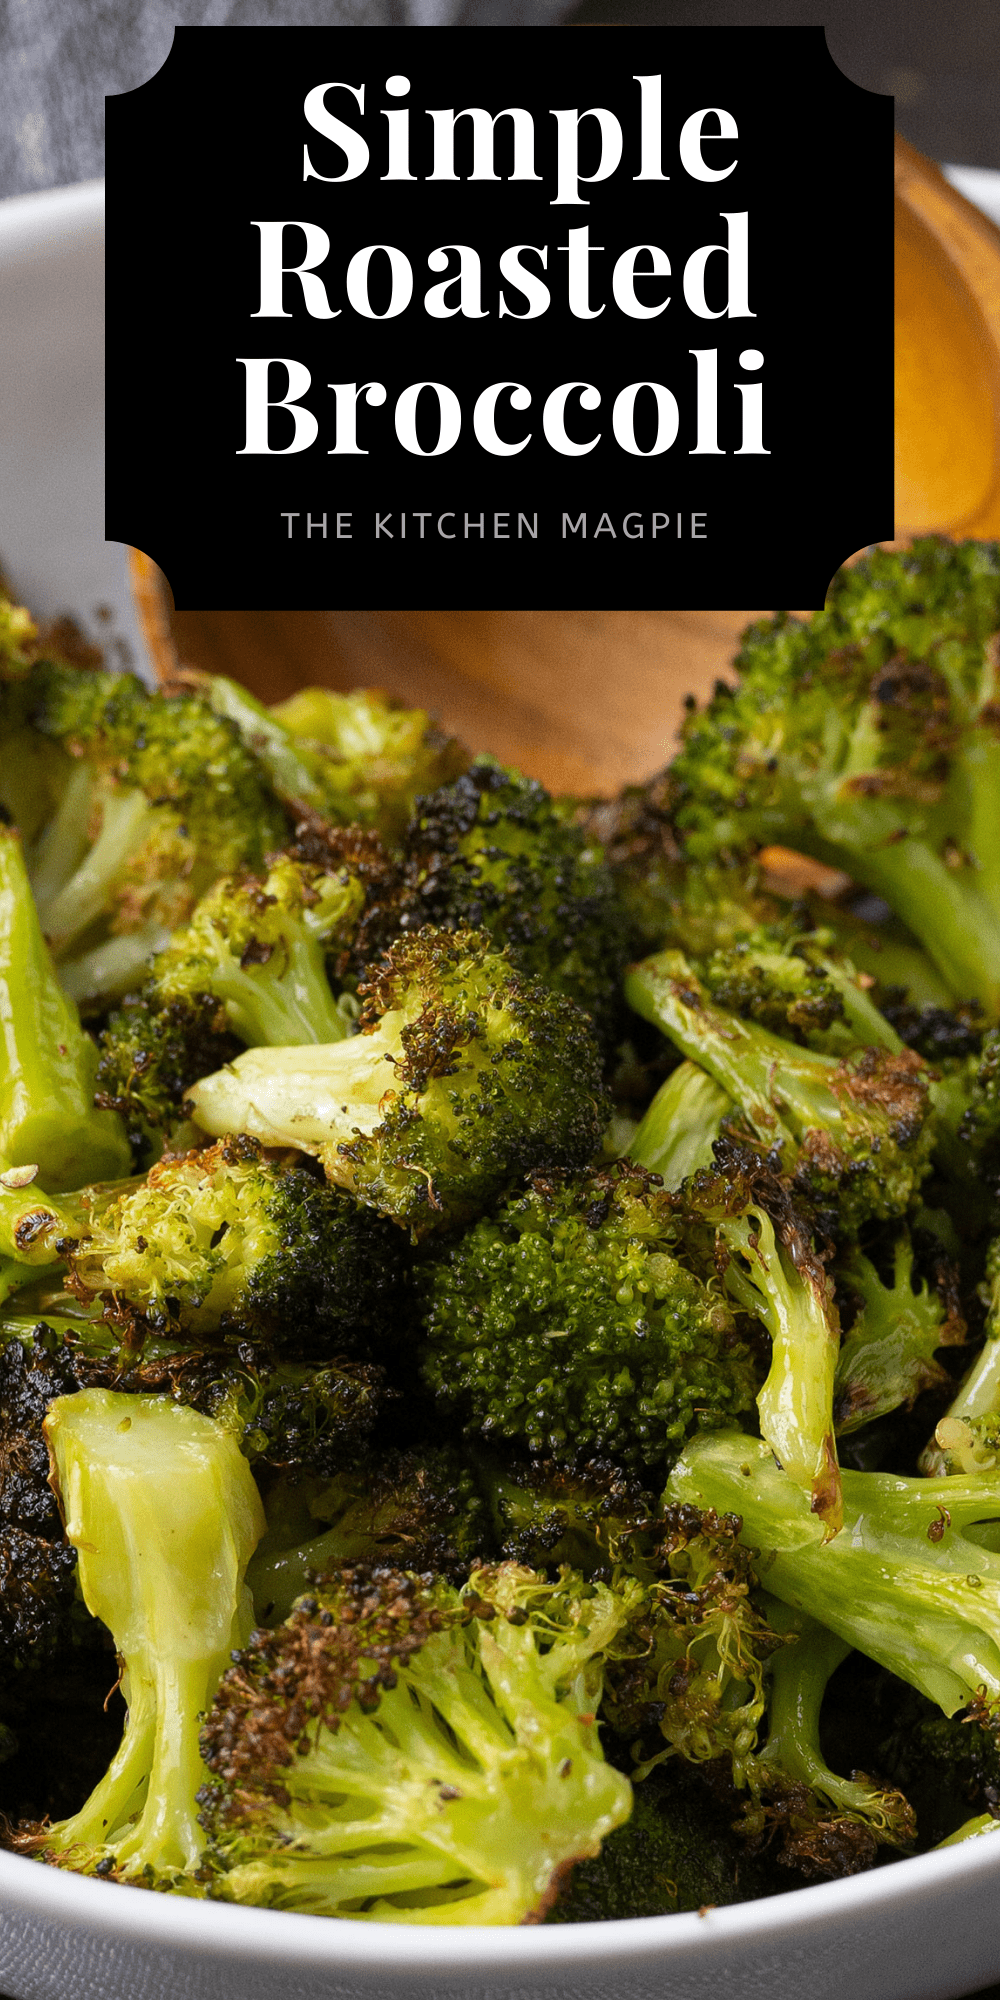 Roasted broccoli is a fast, easy and delicious healthy side dish that is easily customized to your liking with different seasonings!